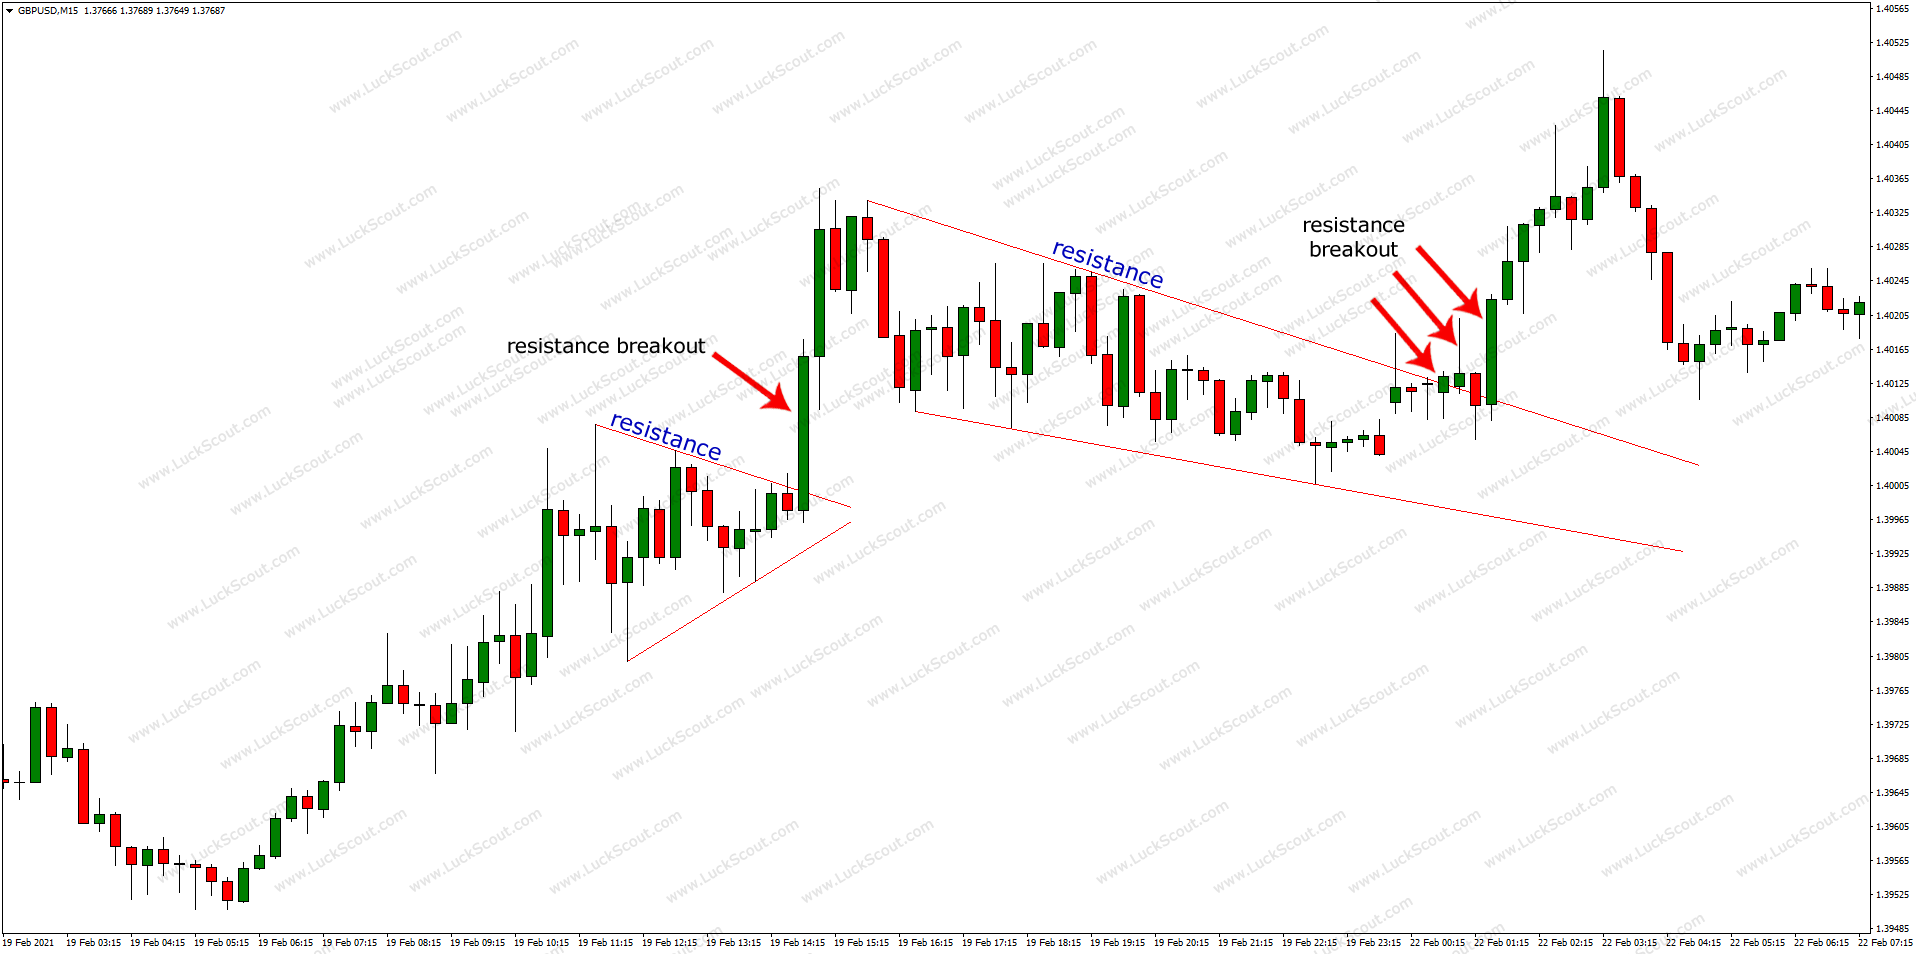 Resistance Breakout in Wedge and Pennant